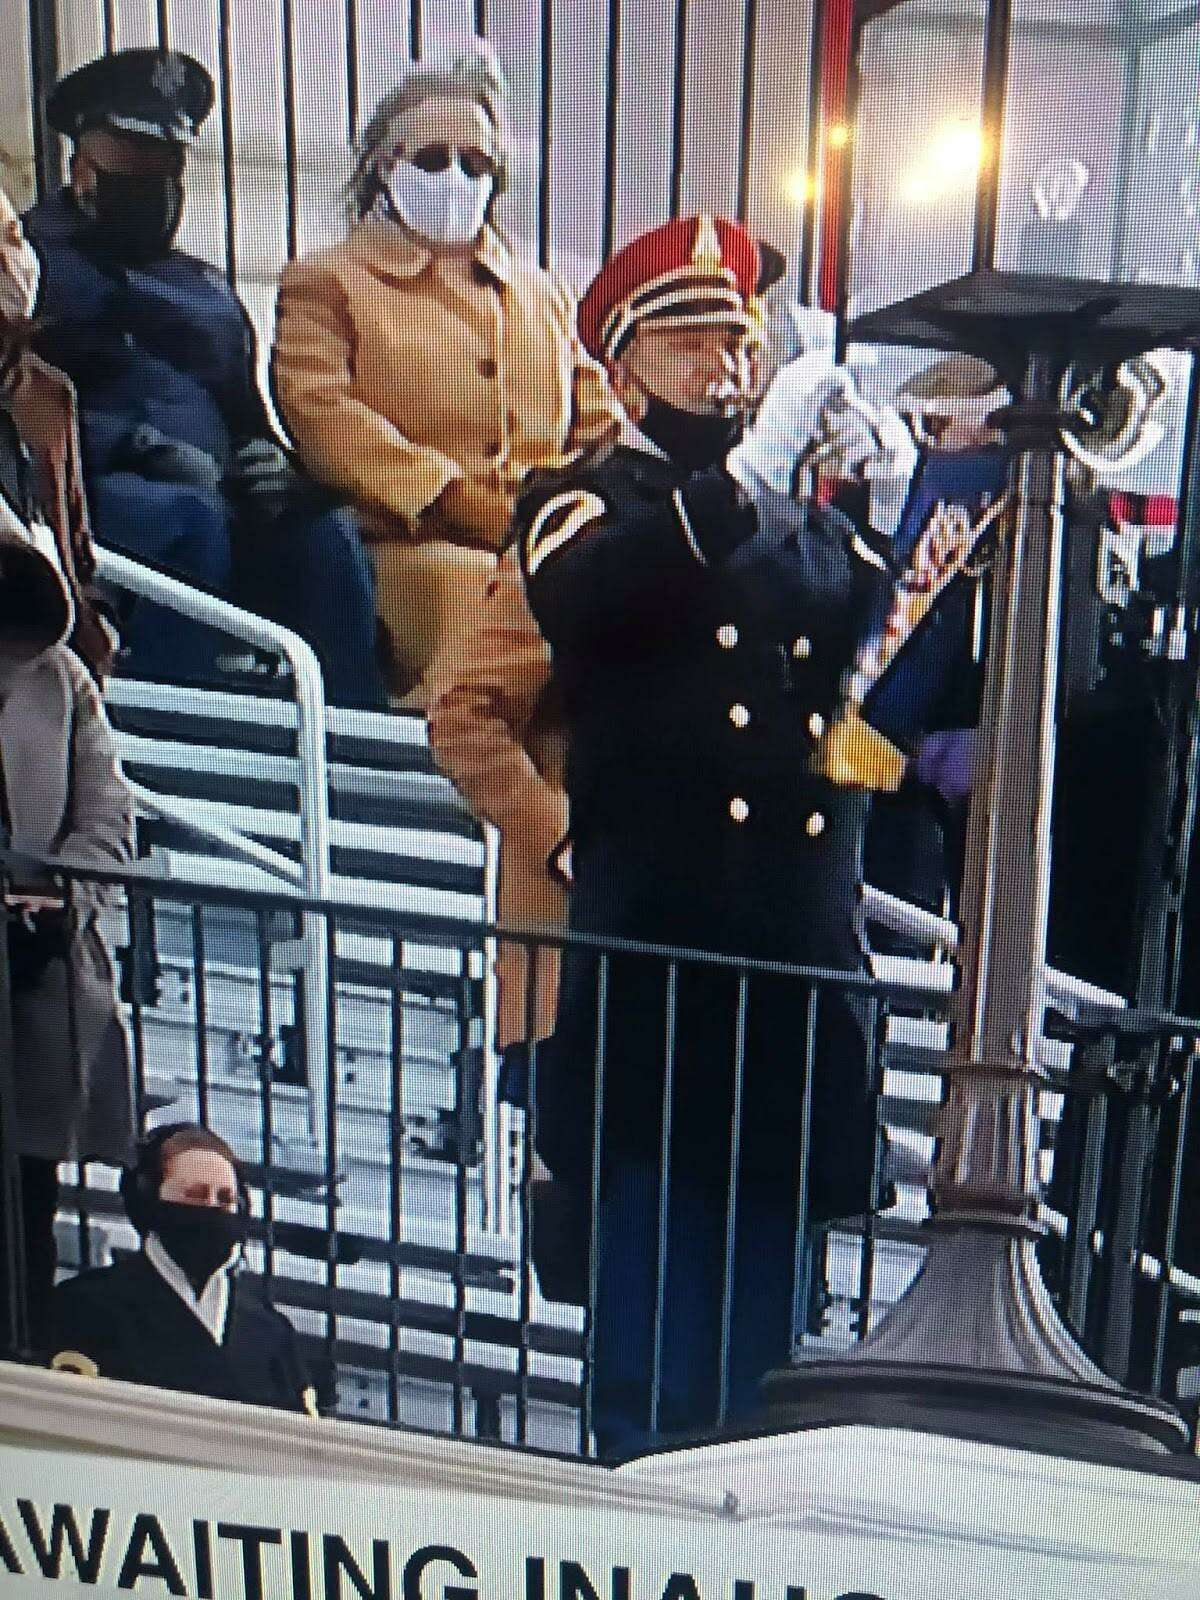 Sergeant First Class Christopher Buckley performs during the 46th Presidential Inauguration of President Joseph Biden.